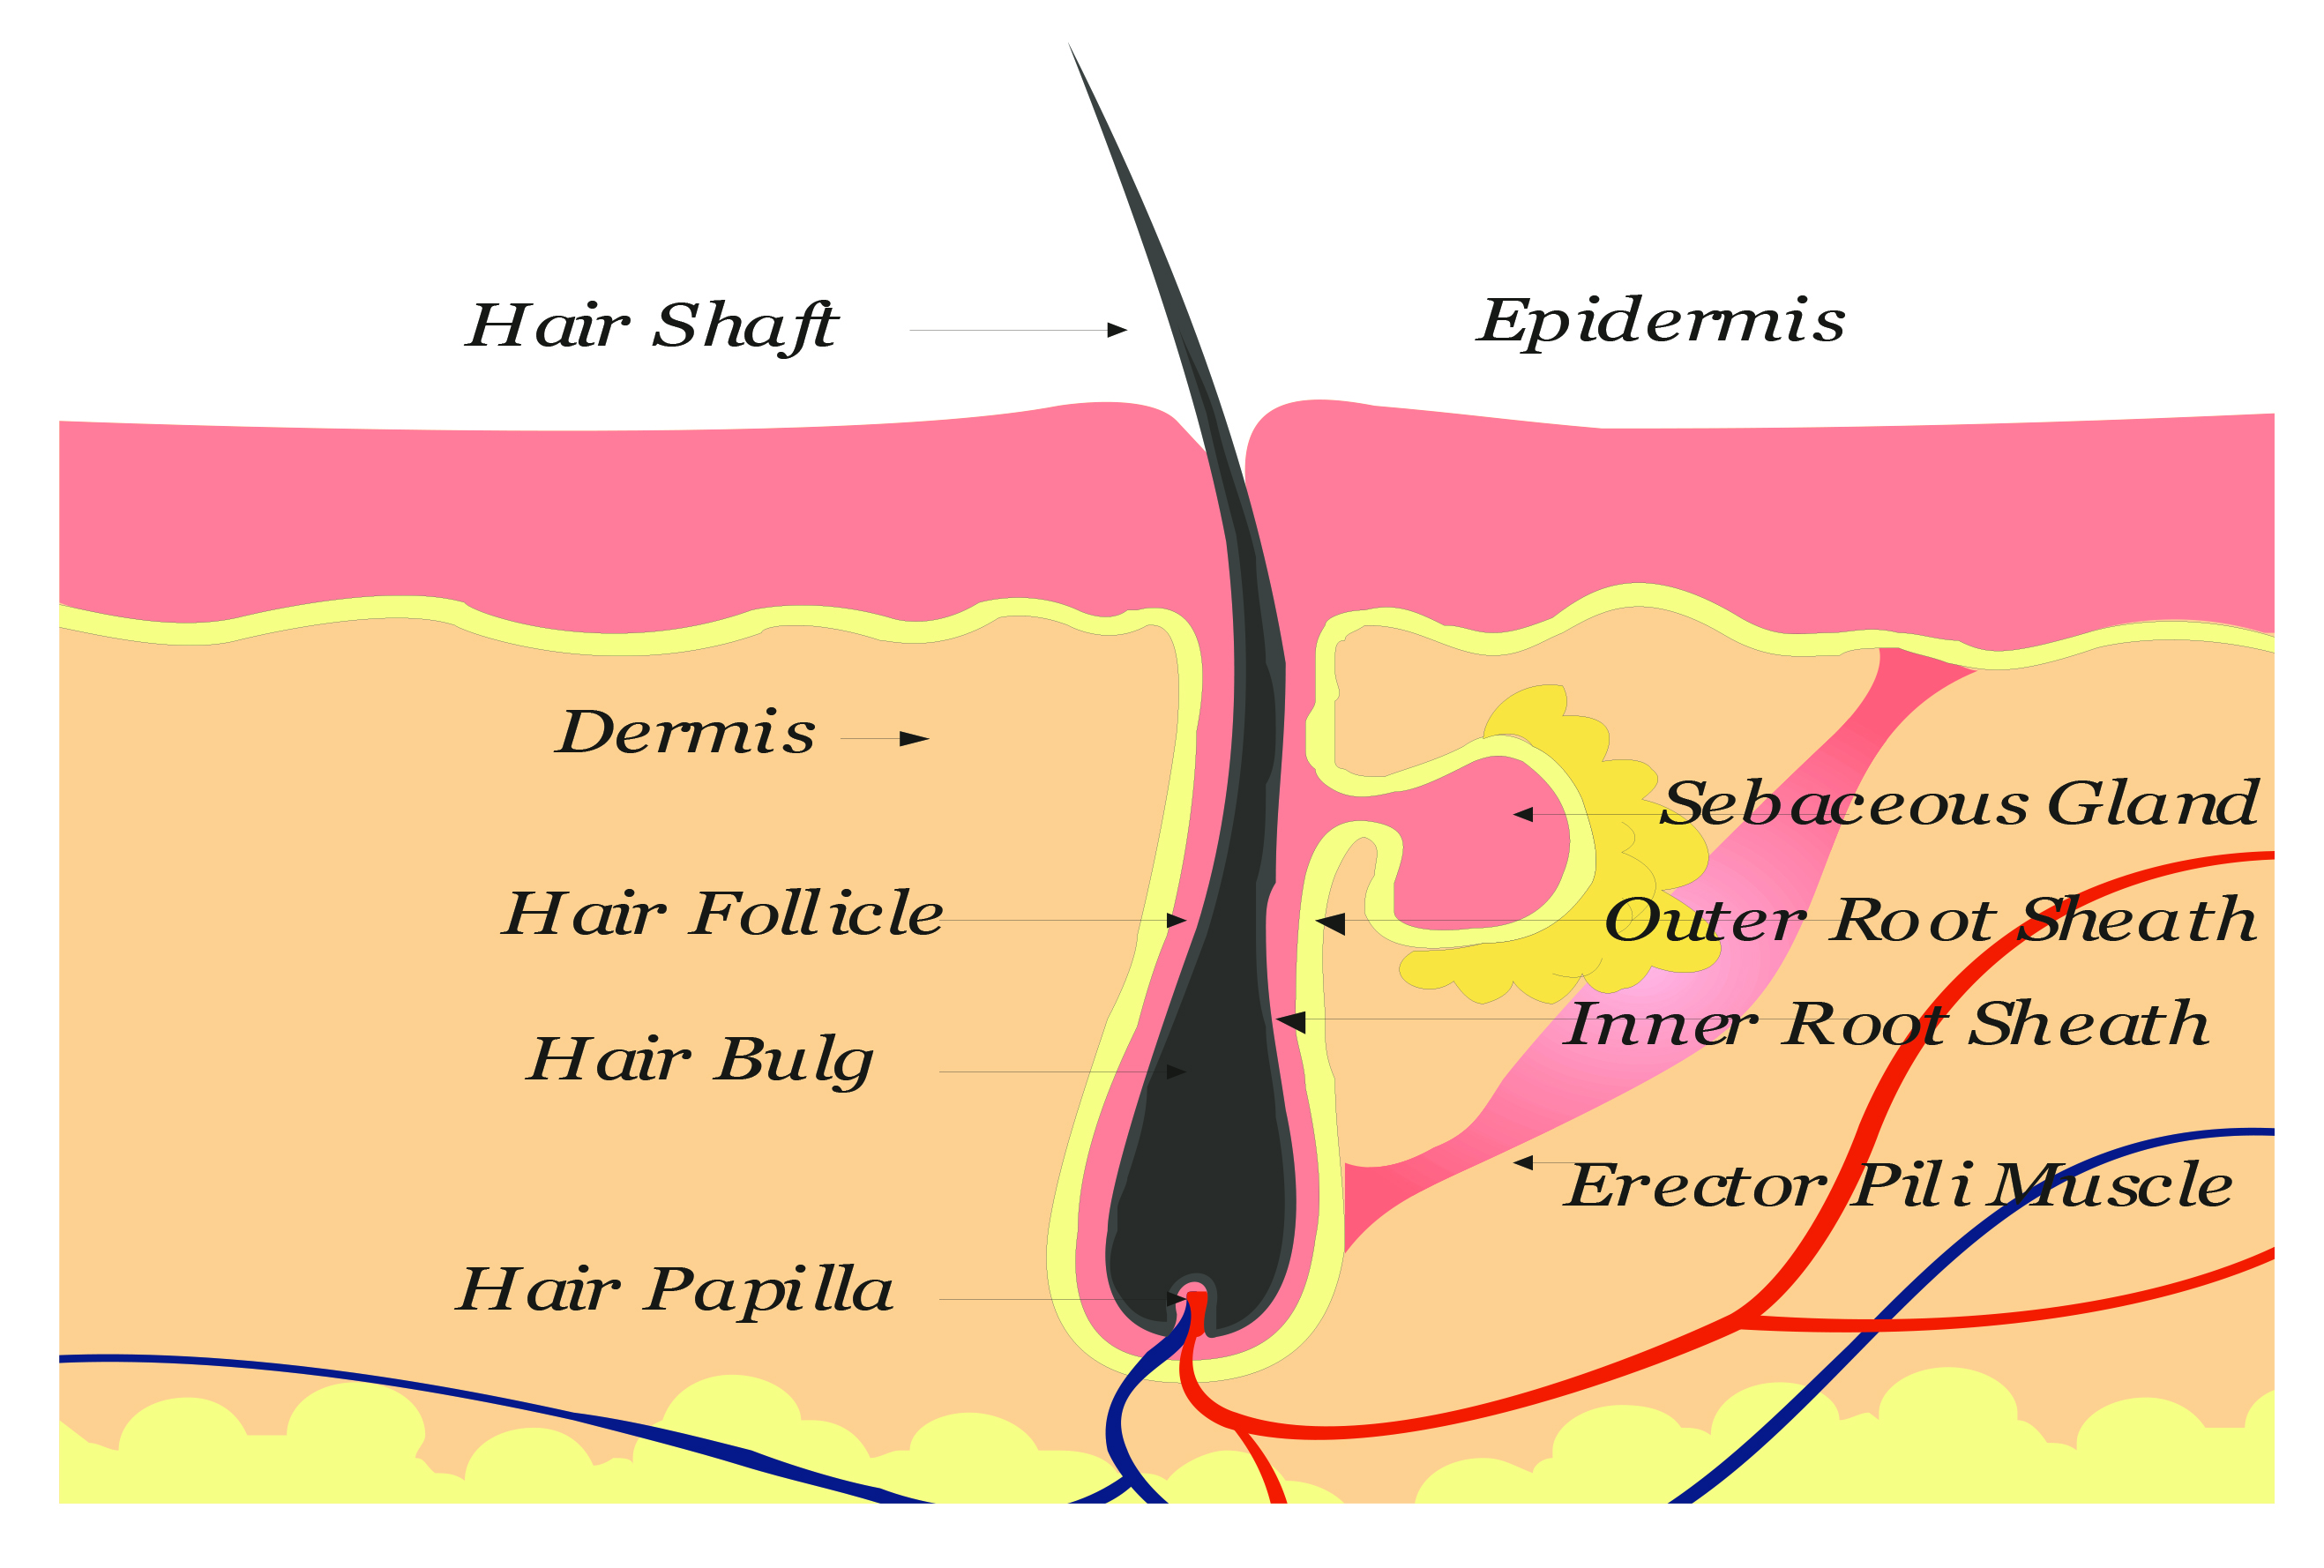 Stem Cell Hair Restoration | Hair Transplant Techniques | Hair Transplant News